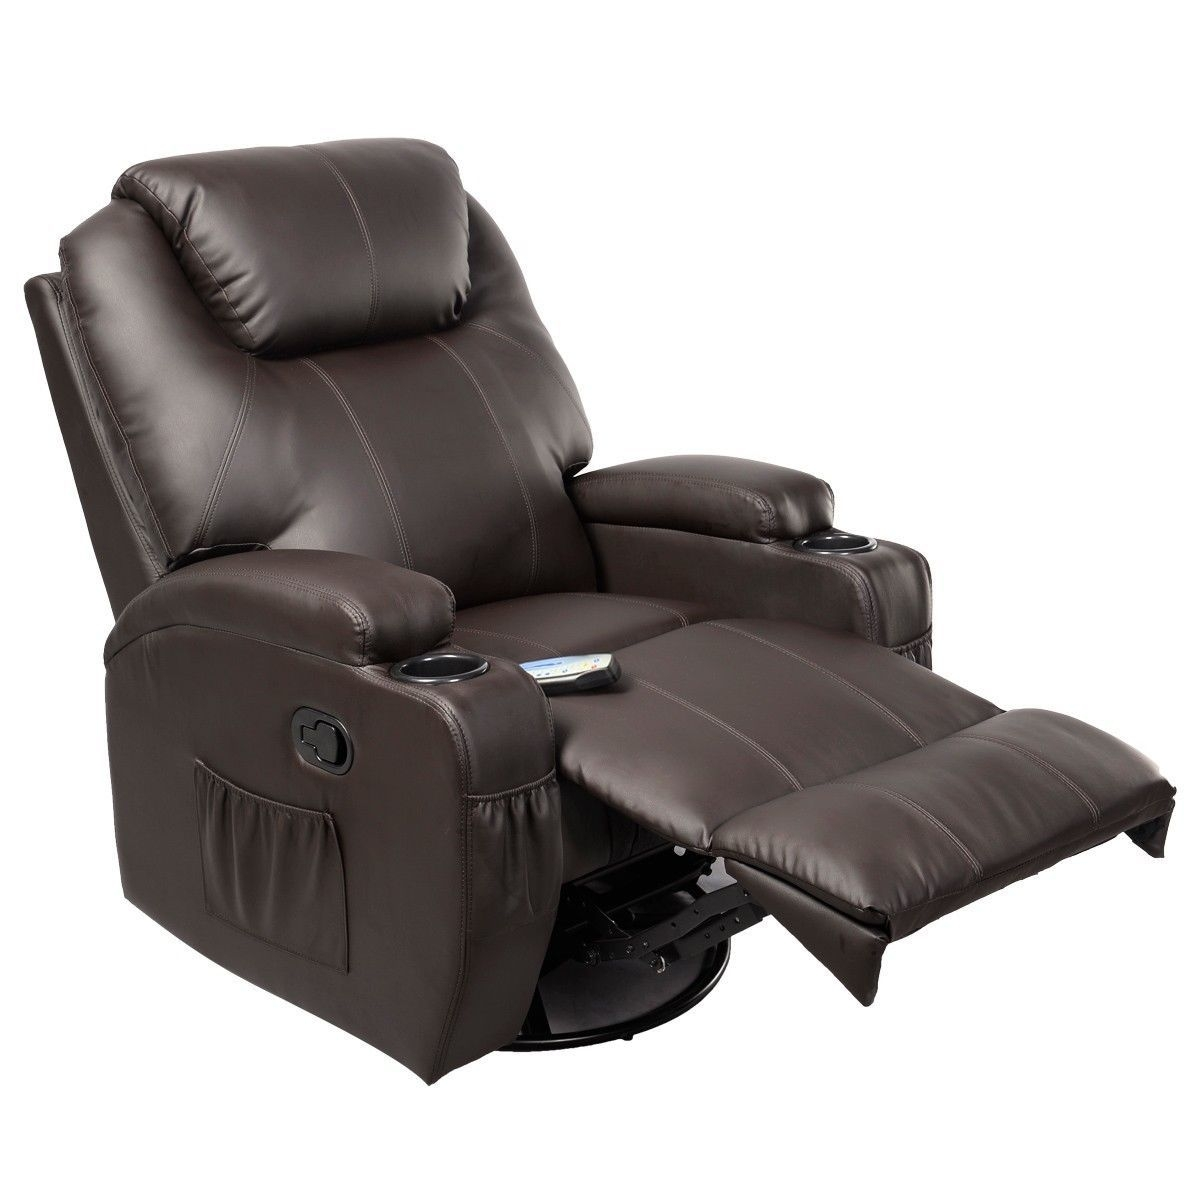 Giantex Ergonomic Massage Sofa Chair Modern Lounge Executive Heated Electric Massage Chairs With